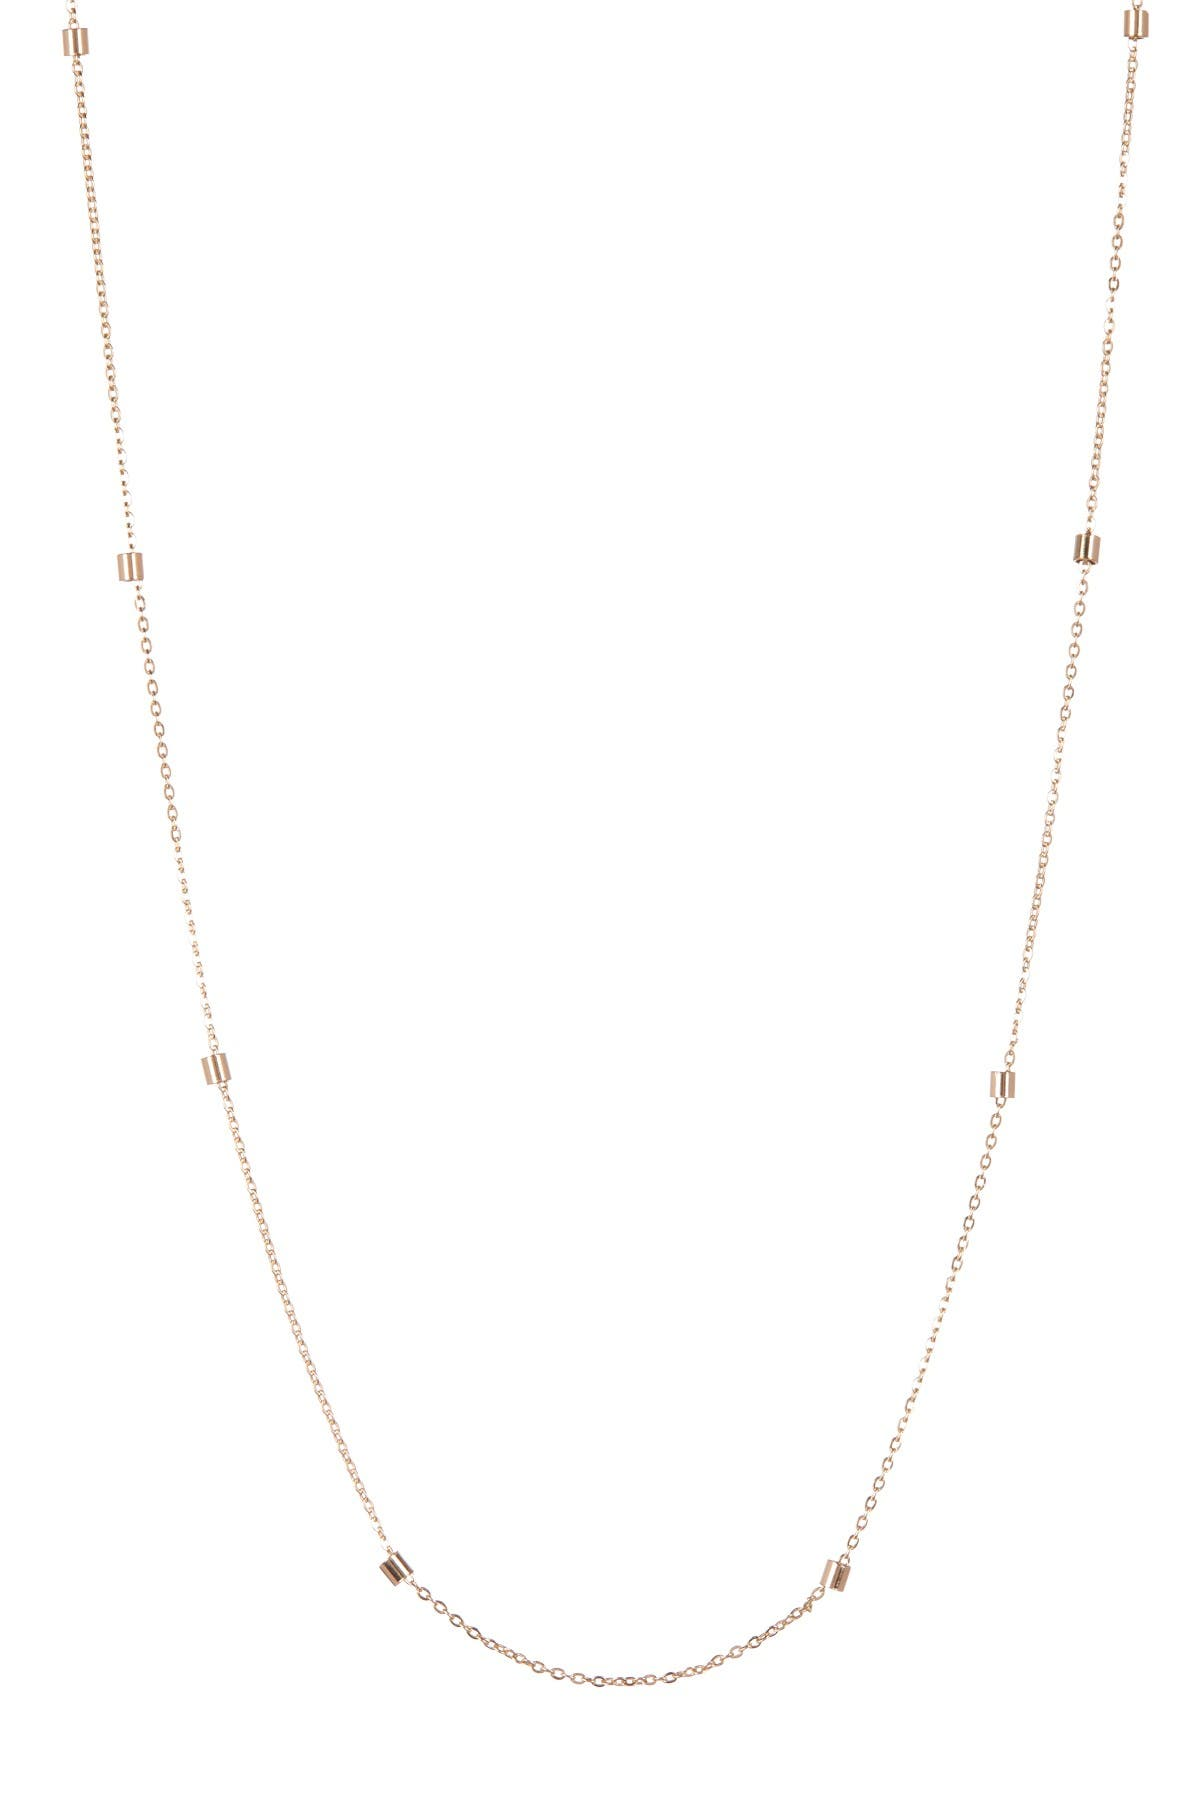 Image of KARAT RUSH 14K Yellow Gold Stationed Bead Necklace